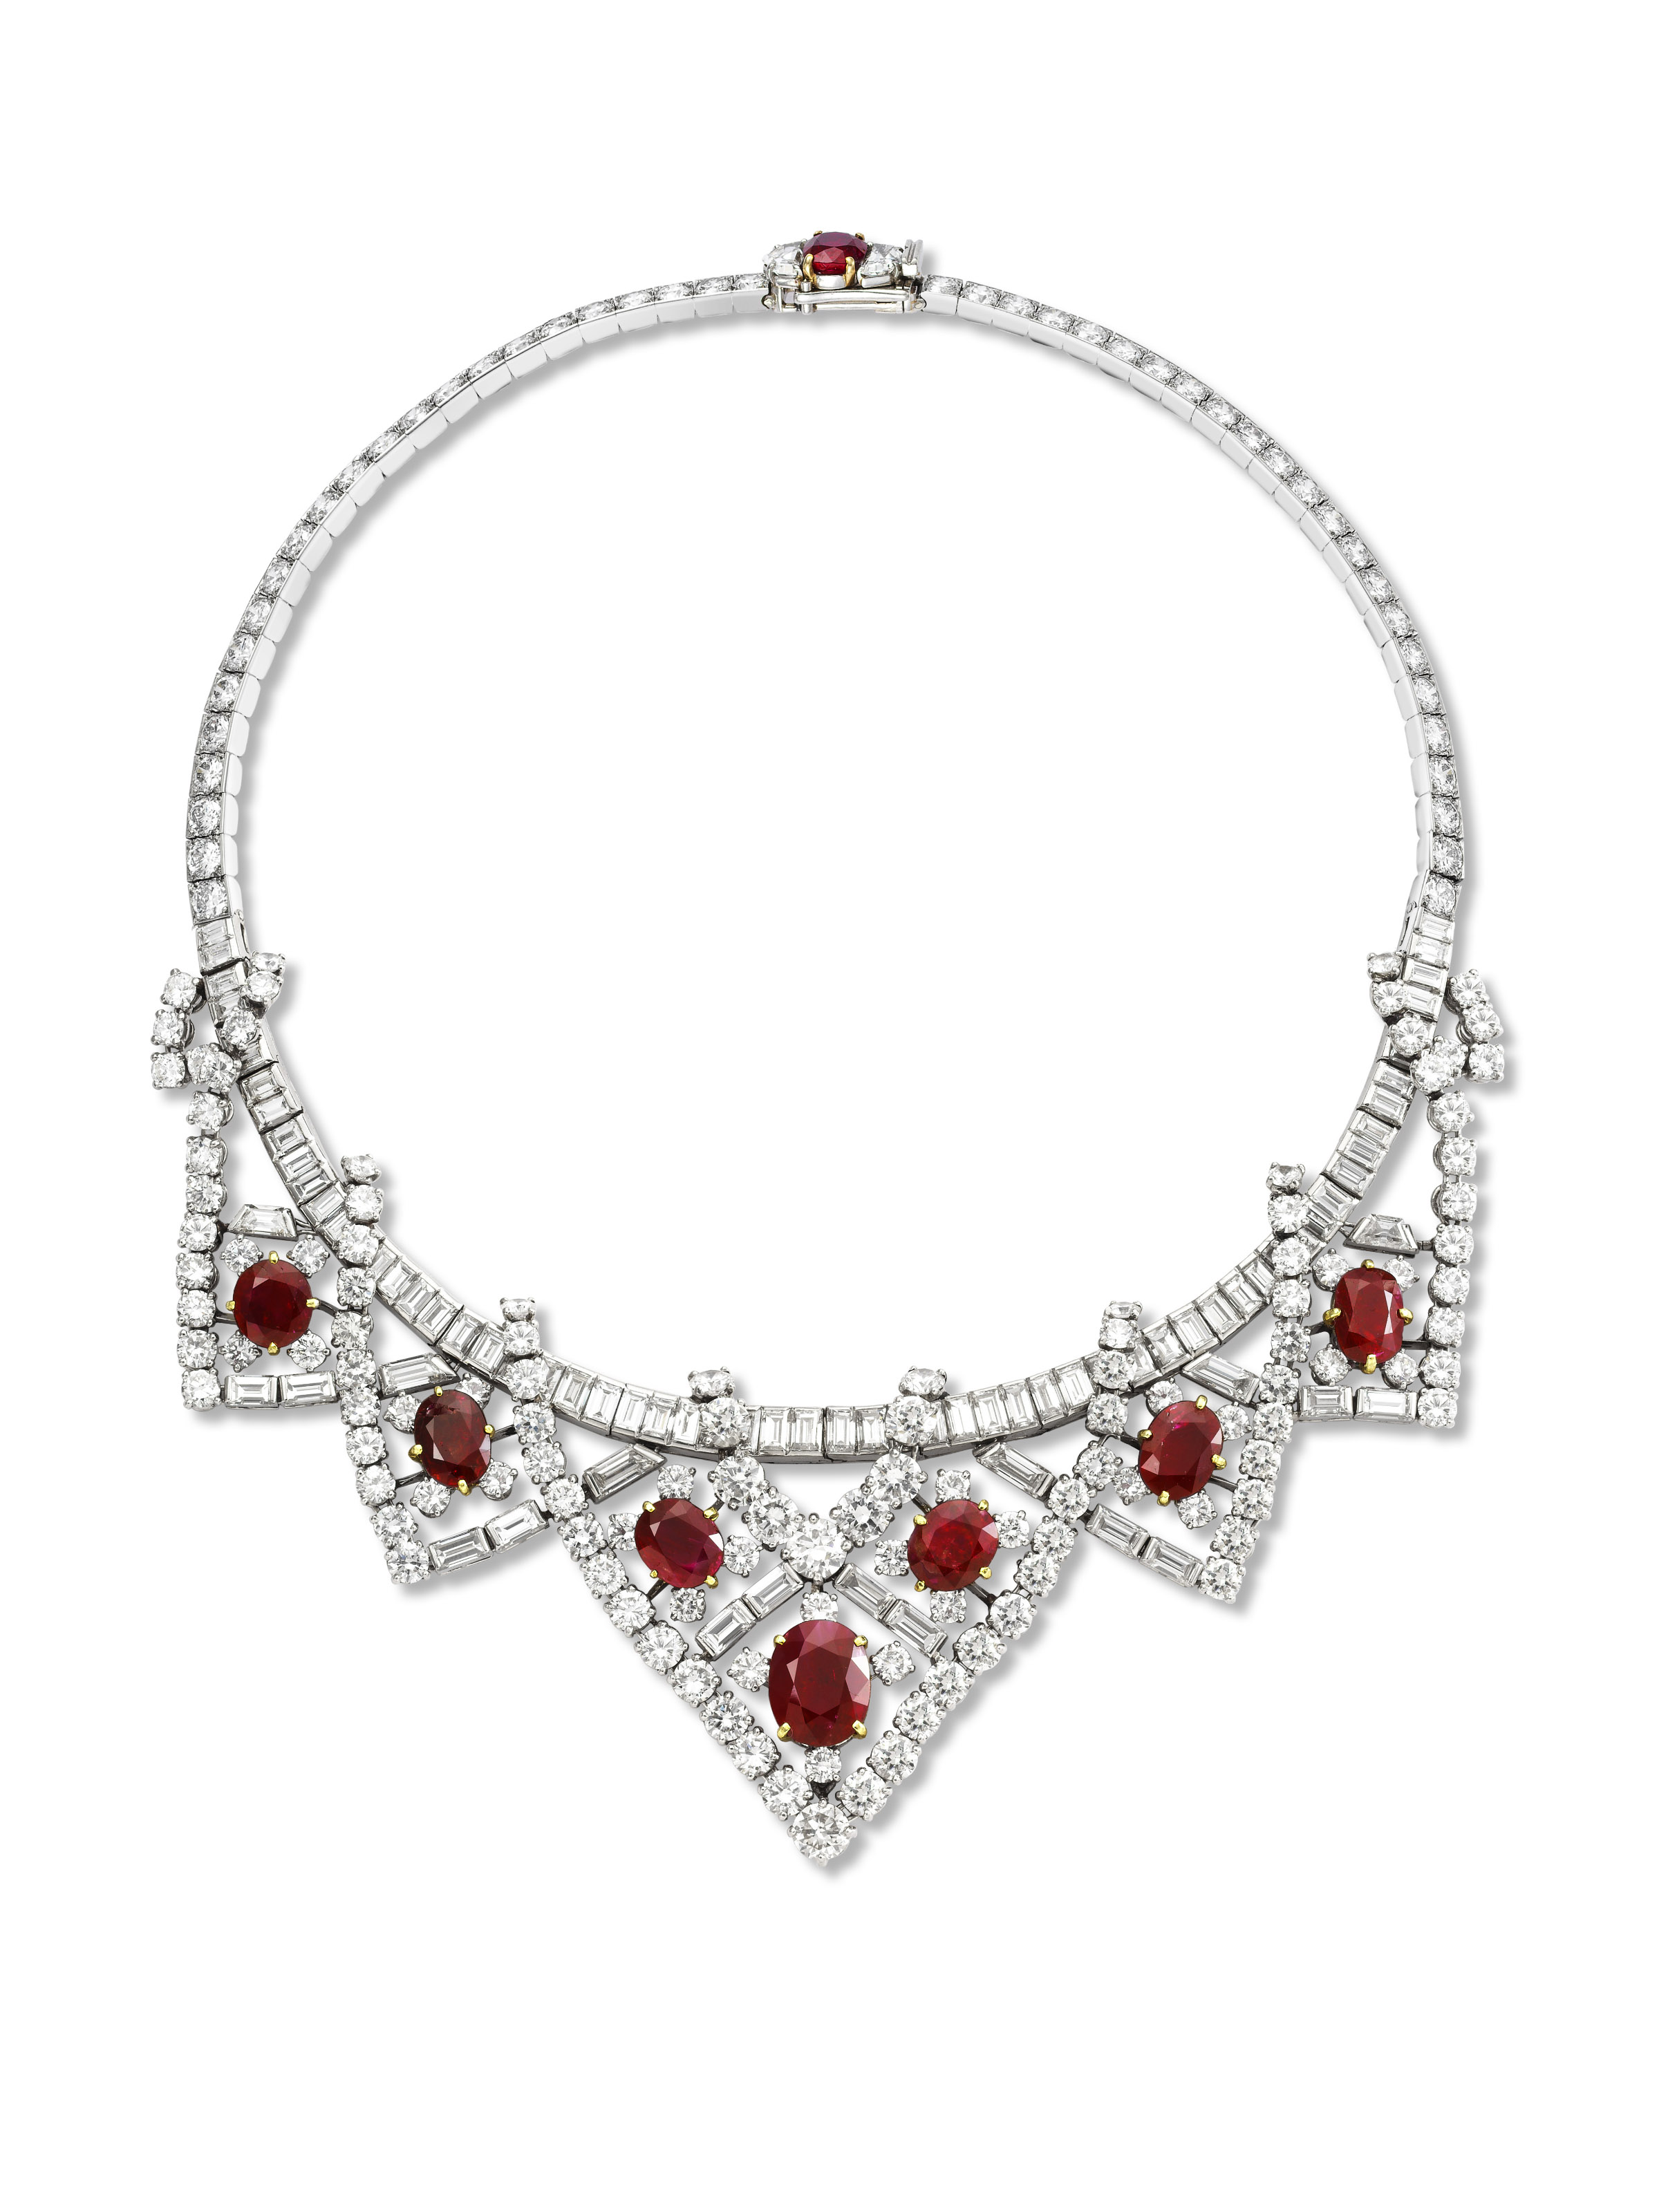 Necklace worn by Elizabeth Taylor _c_ Cartier